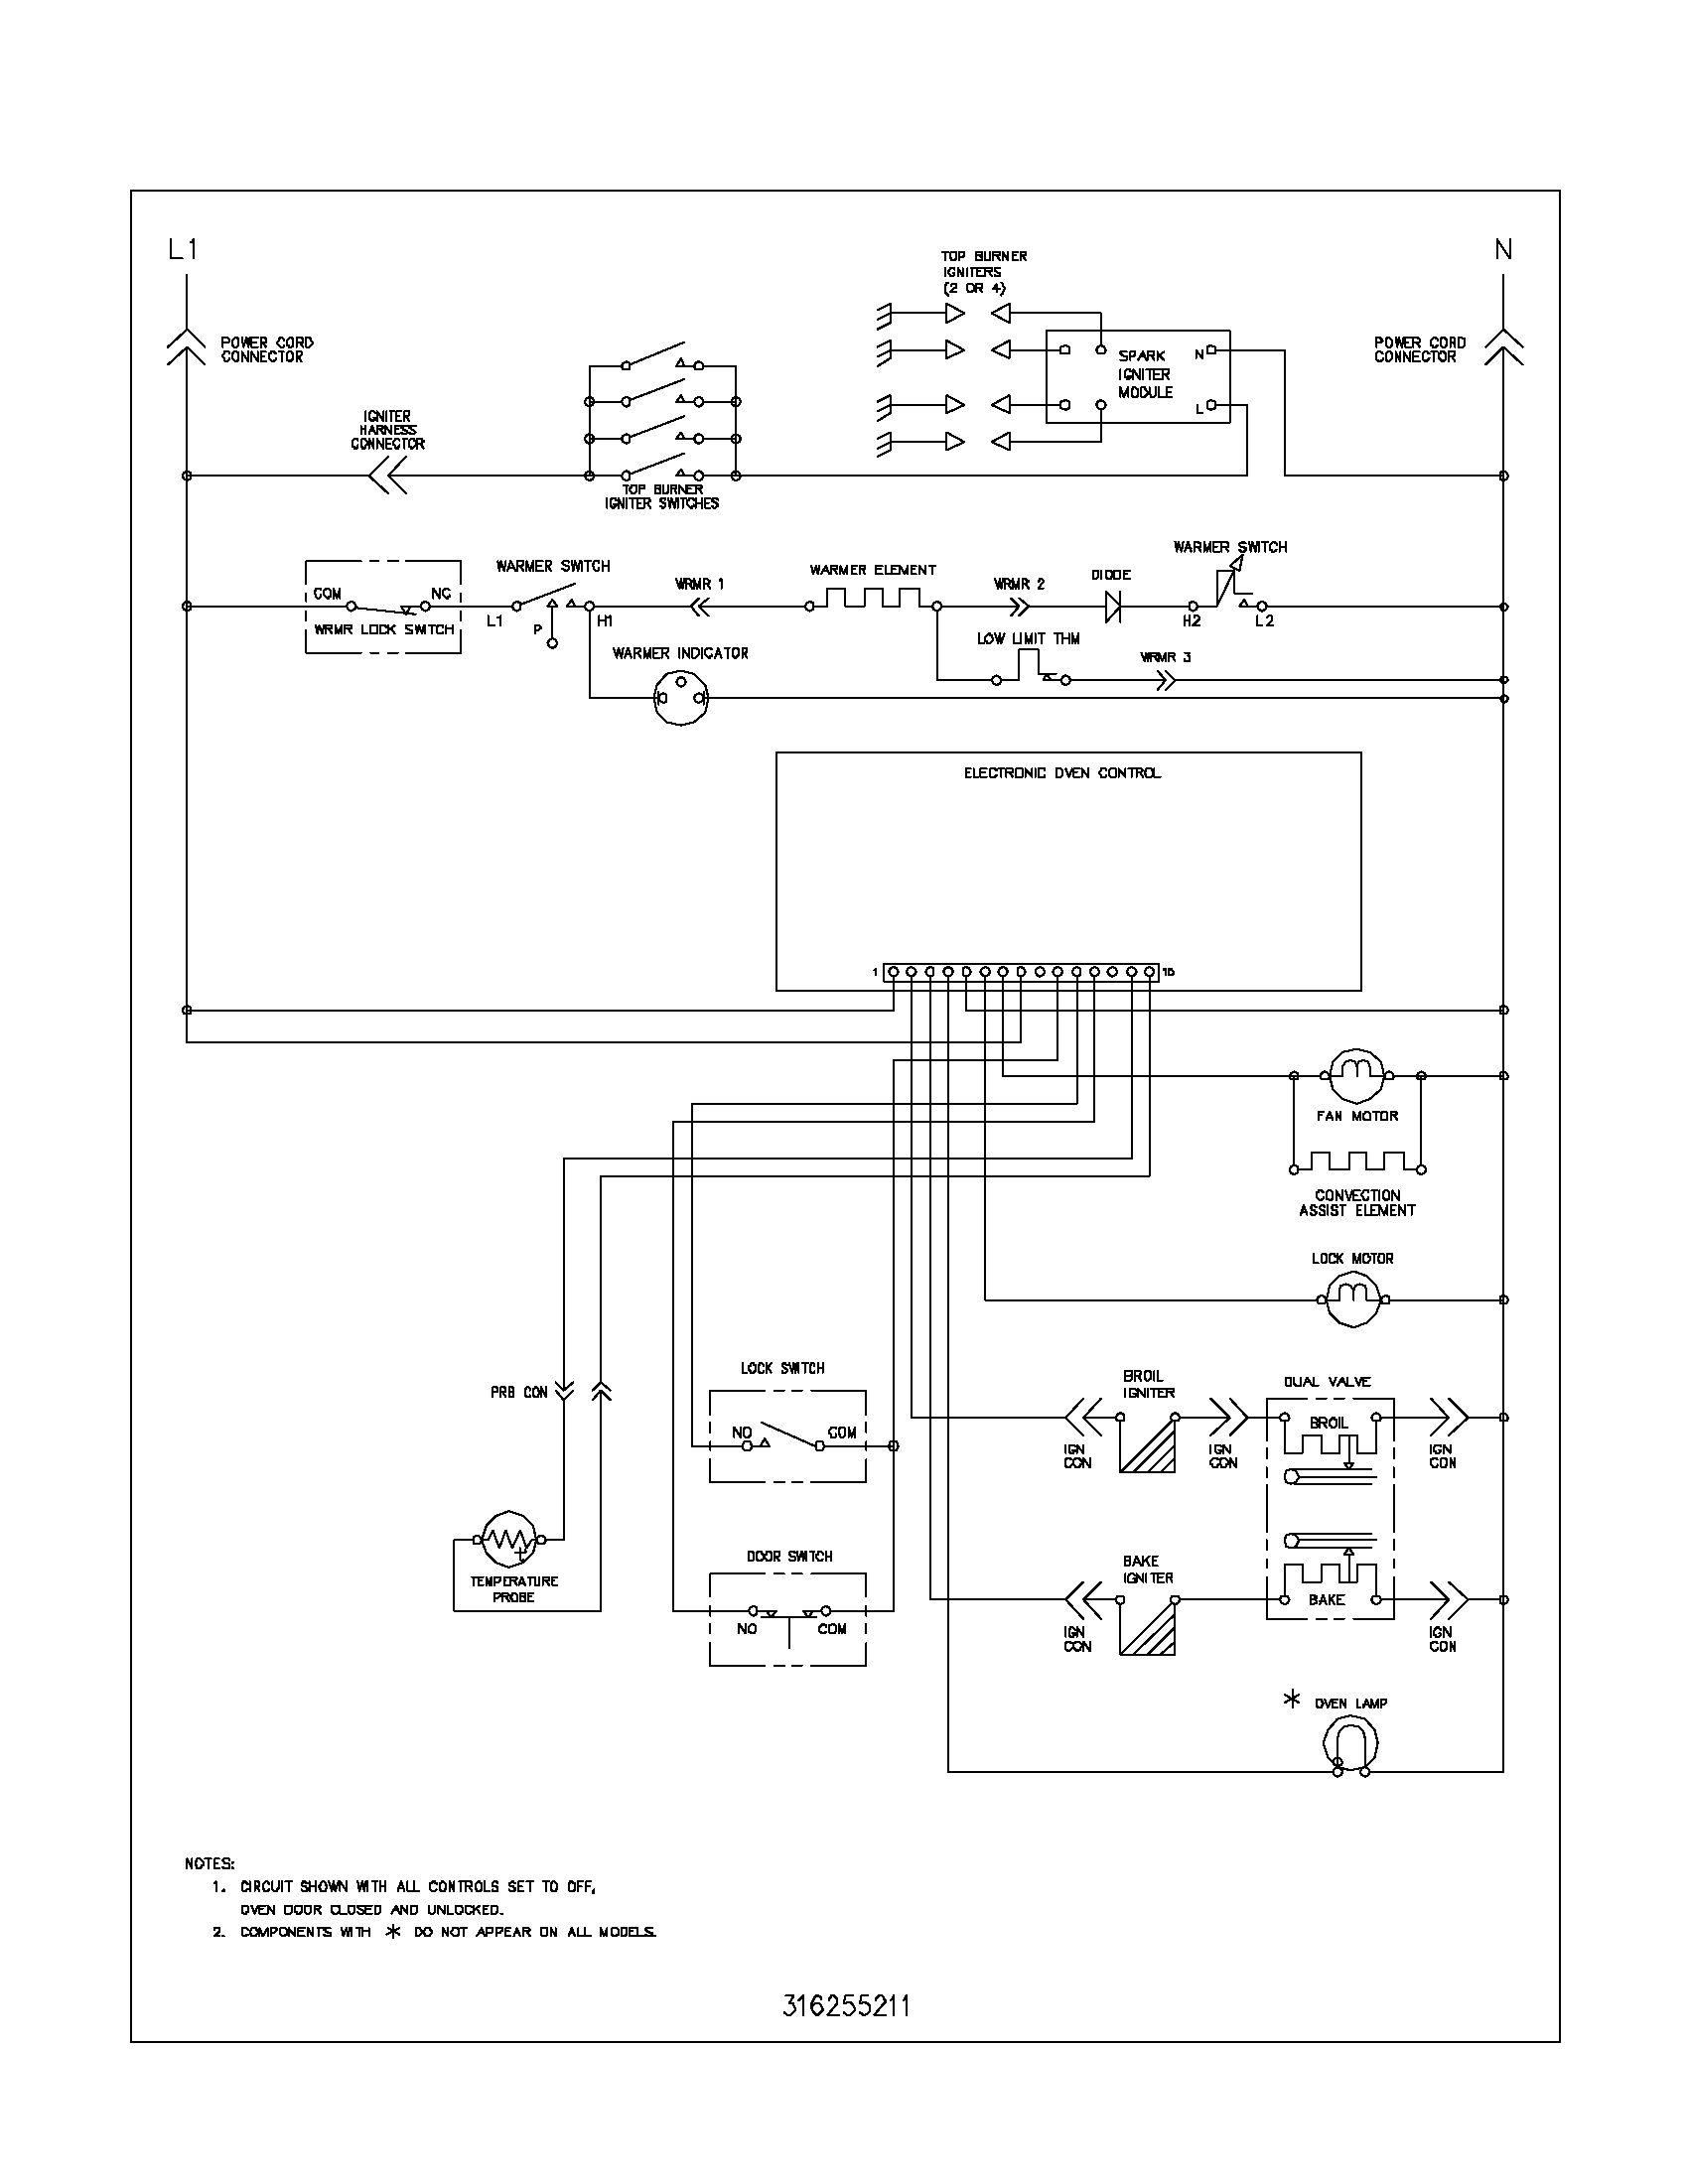 frigidaire plgf389ccb gas range timer stove clocks and appliance timers Frigidaire Dishwasher Wiring-Diagram frigidaire electric stove wiring diagram